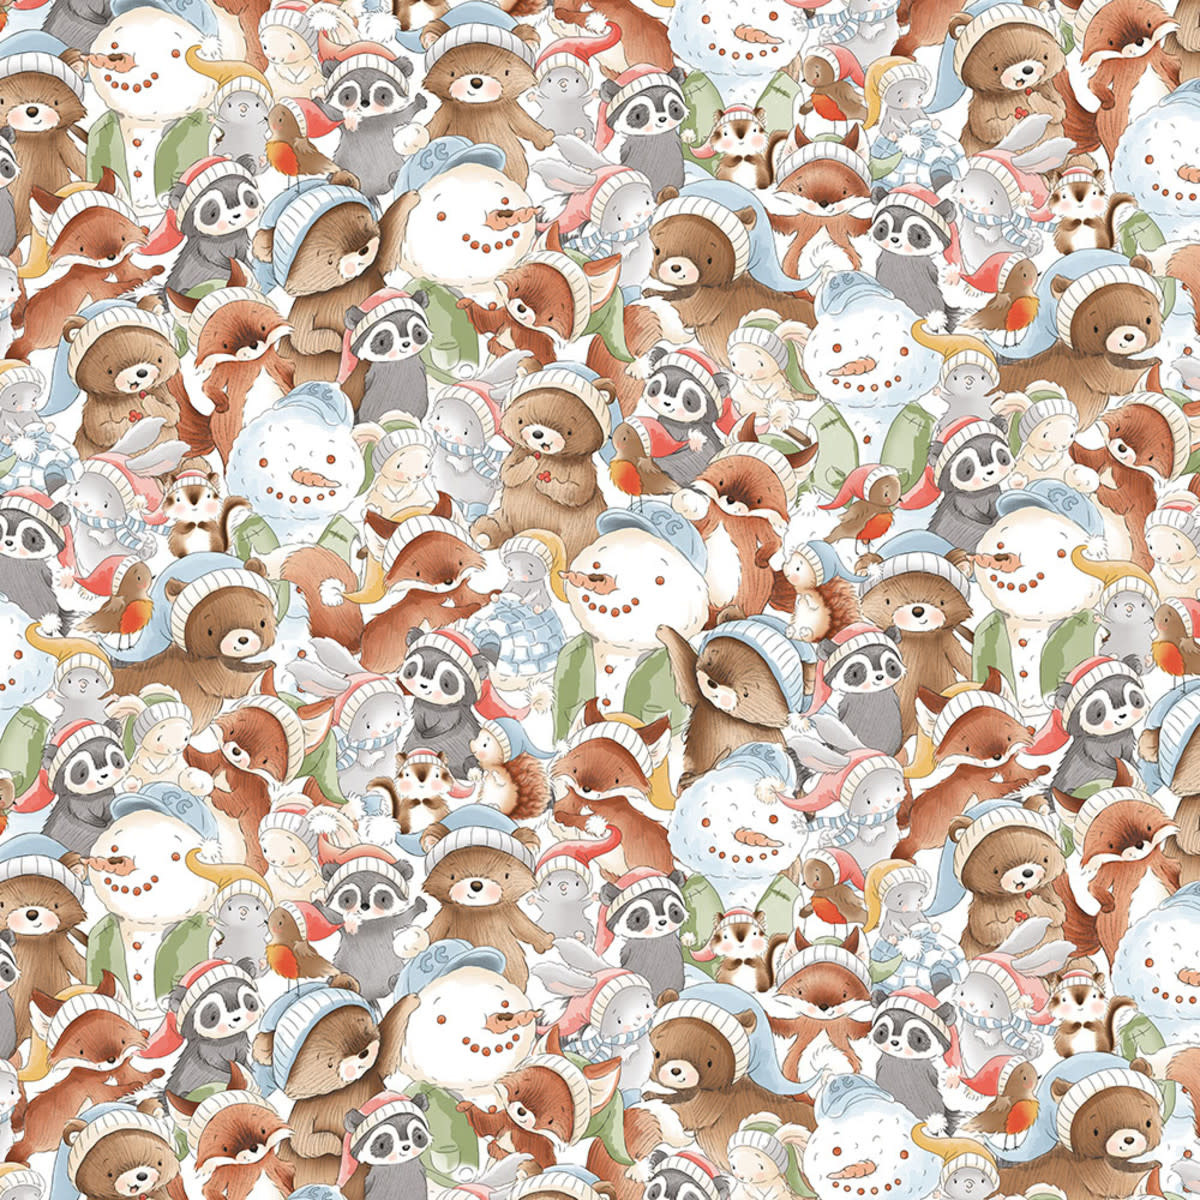 TIMELESS TREASURES SNOW DAY PACKED WINTER ANIMALS PER CM OR $20/M